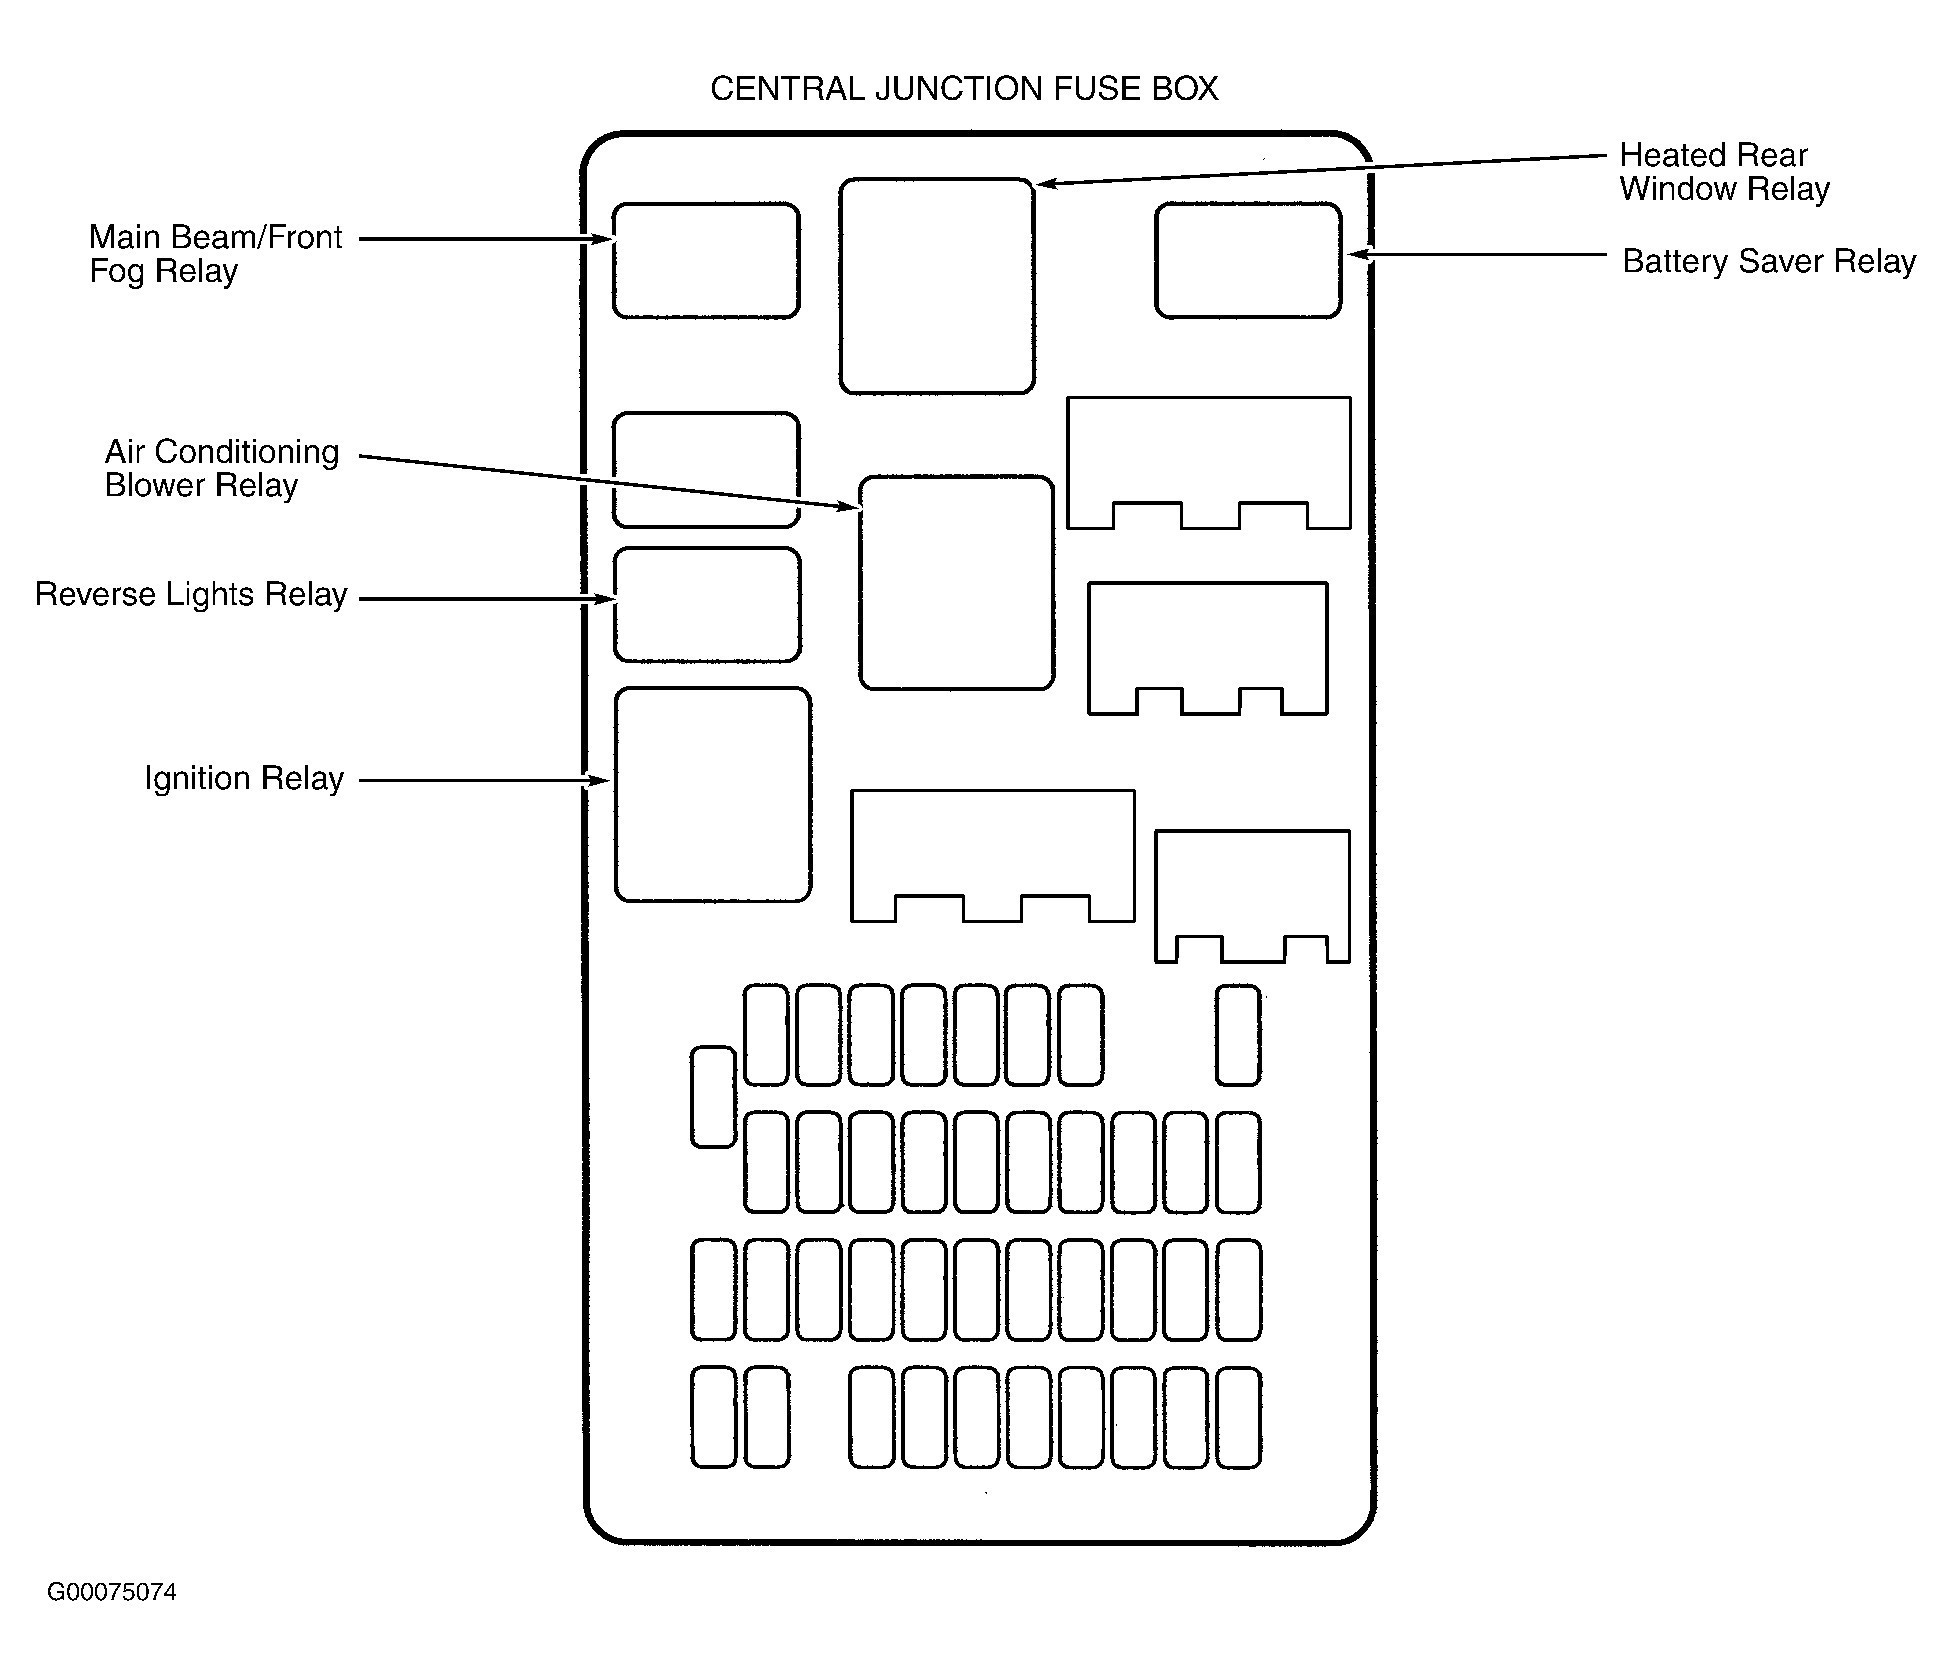 1999 Ford Expedition Fuse Box Diagram 2003 Jaguar X Type Fuse Box